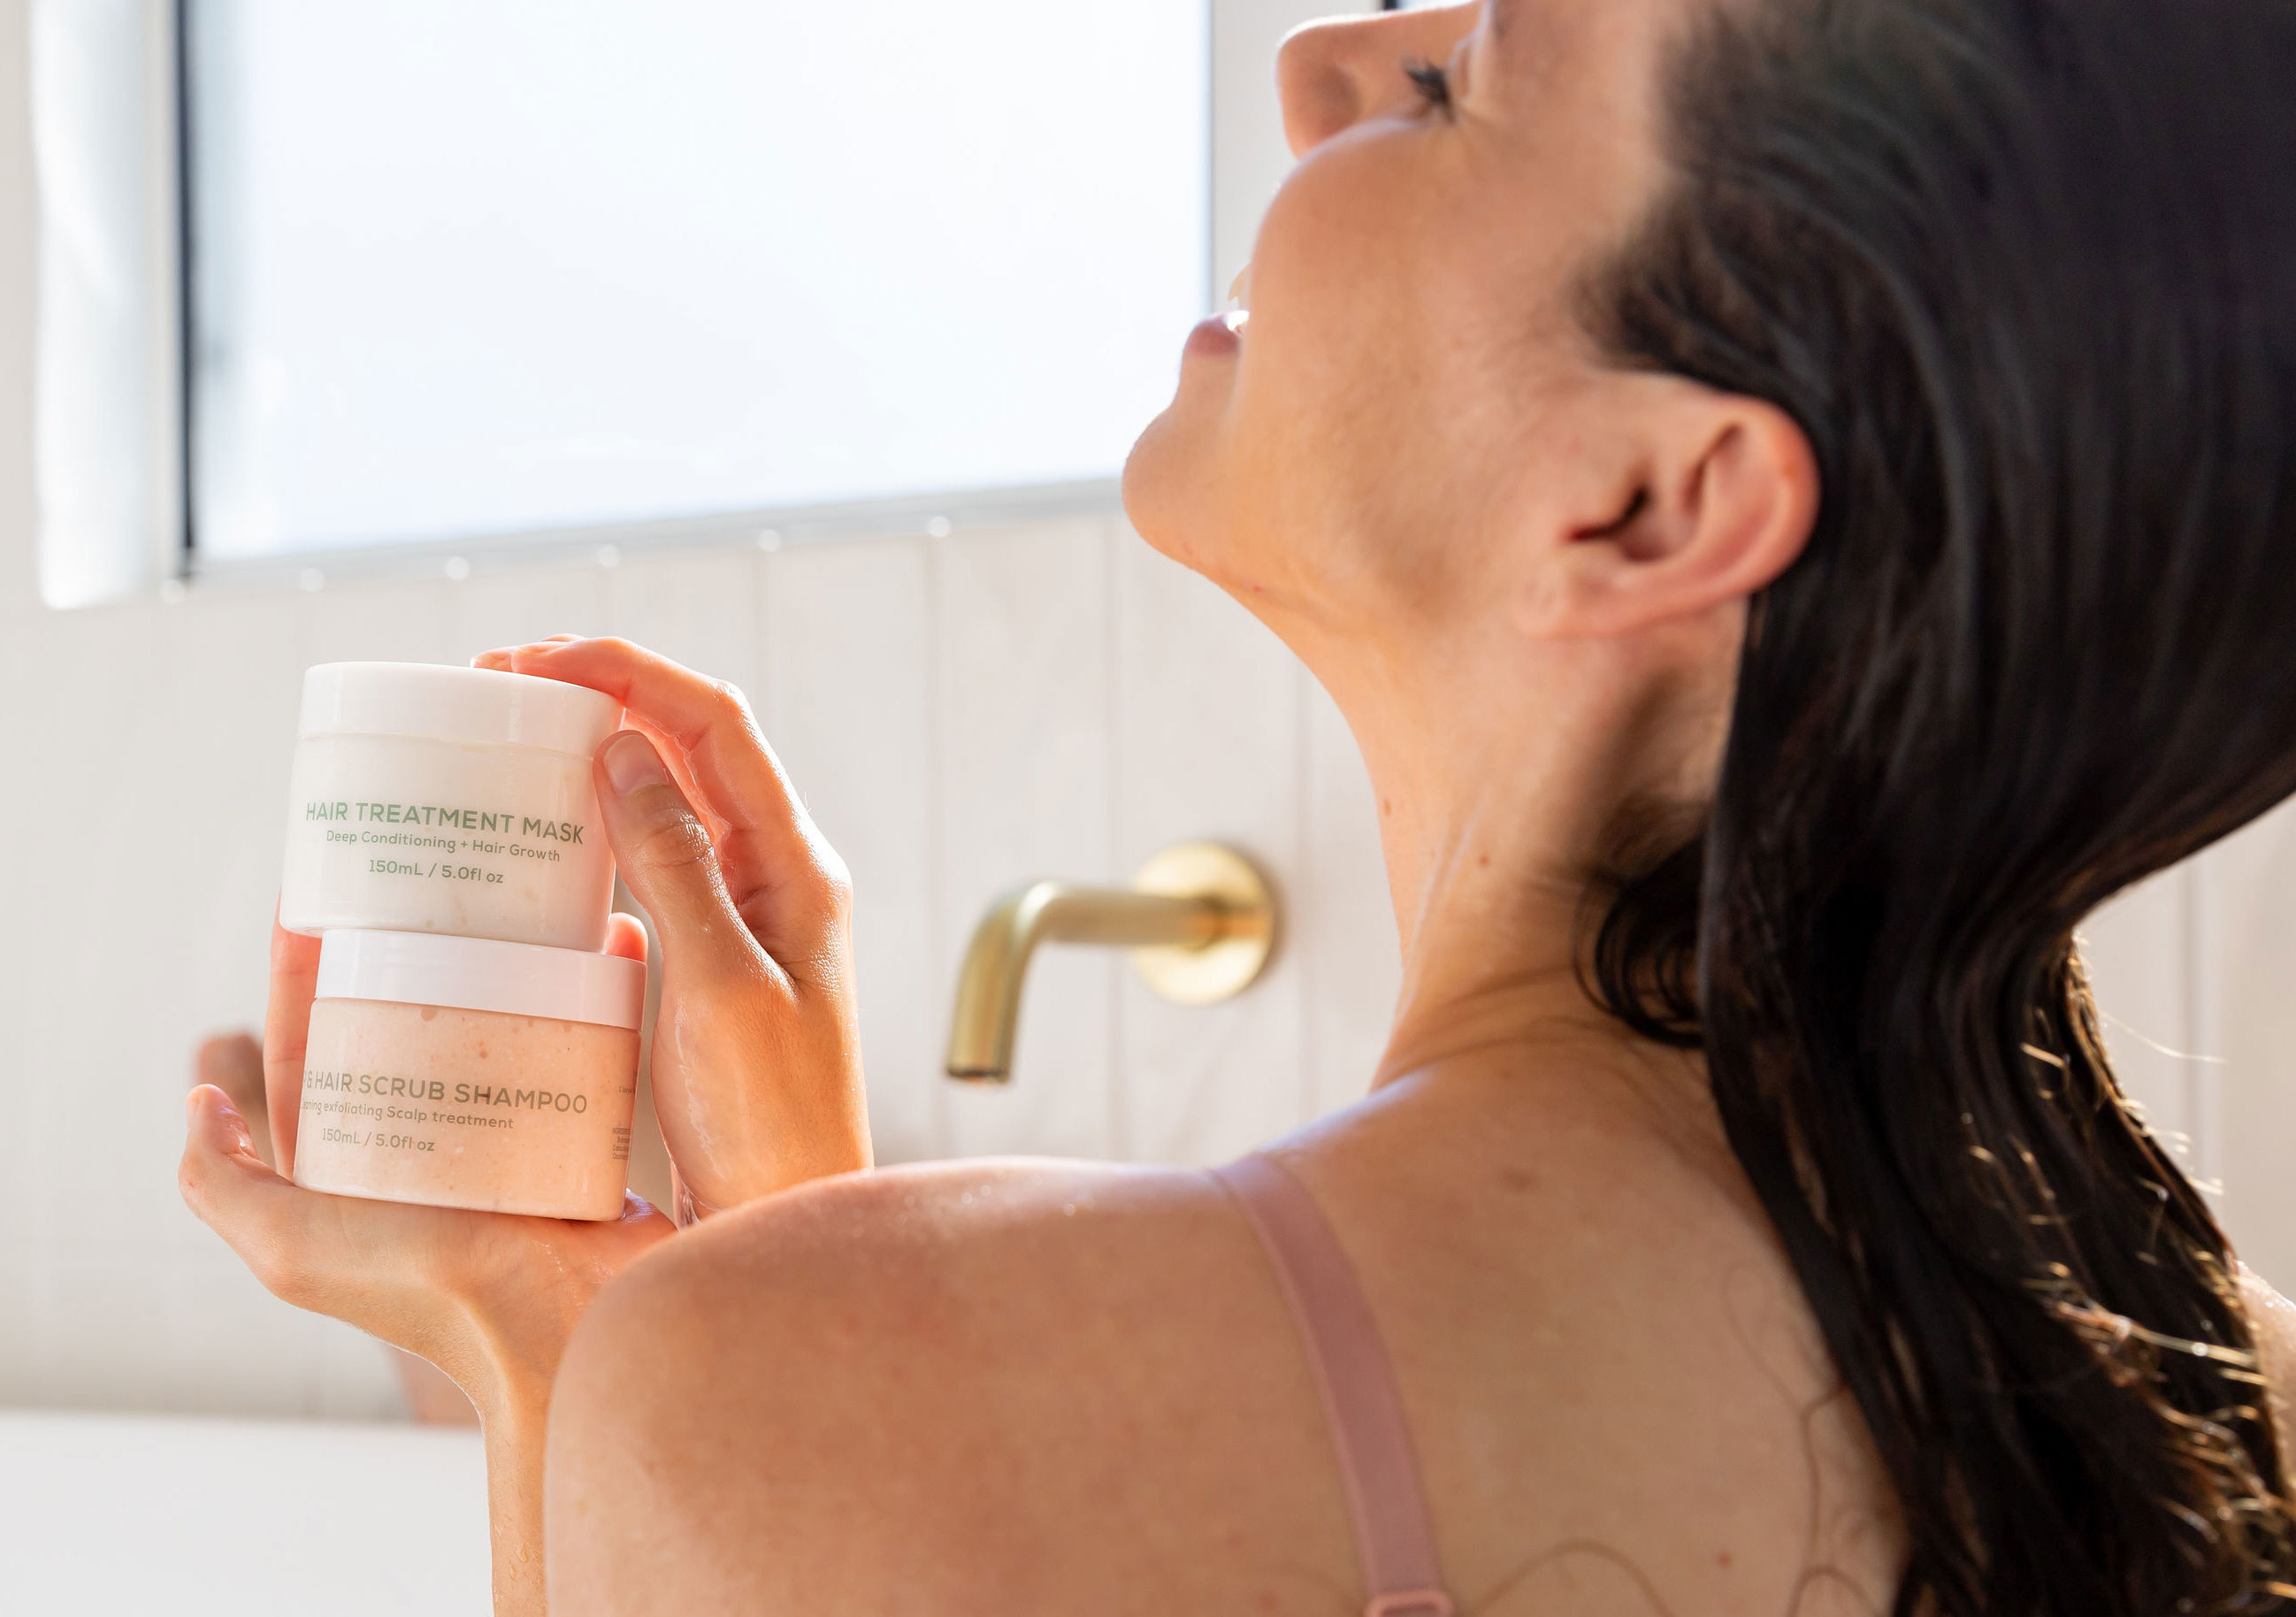 A model in a bathtub holding the containers of the scalp scrub and hair treatment mask